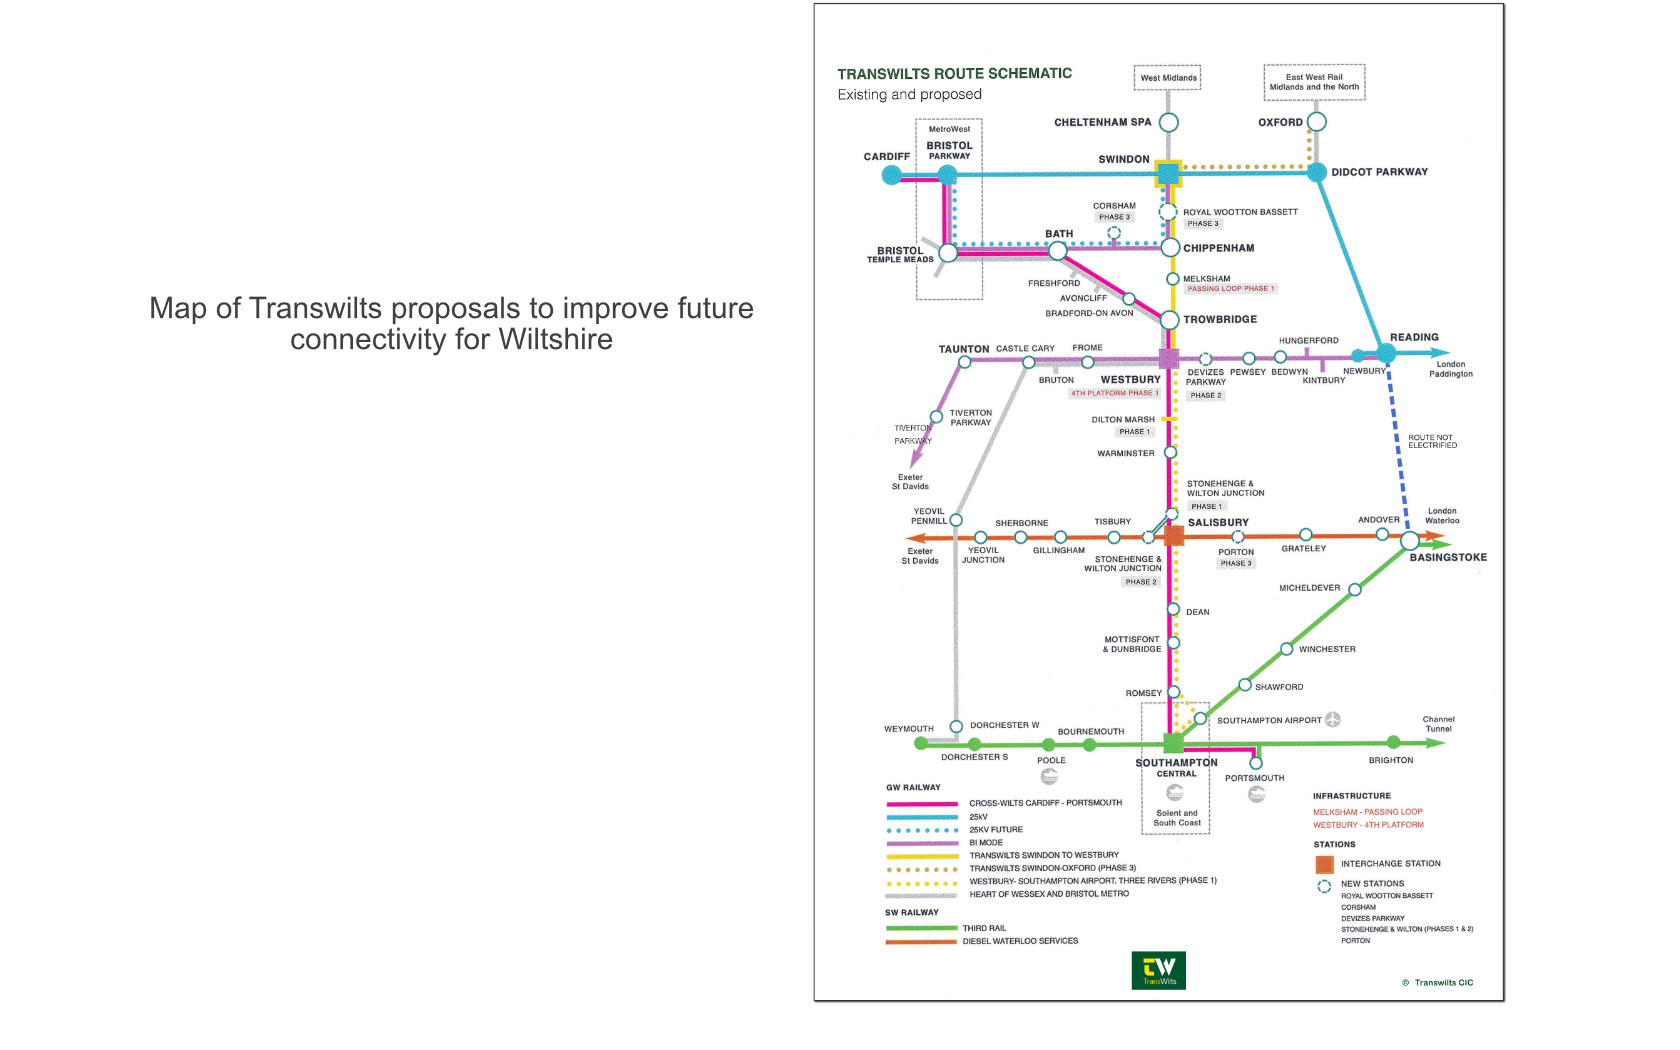 map of transwilts proposals to improve future connectivity for Wiltshire